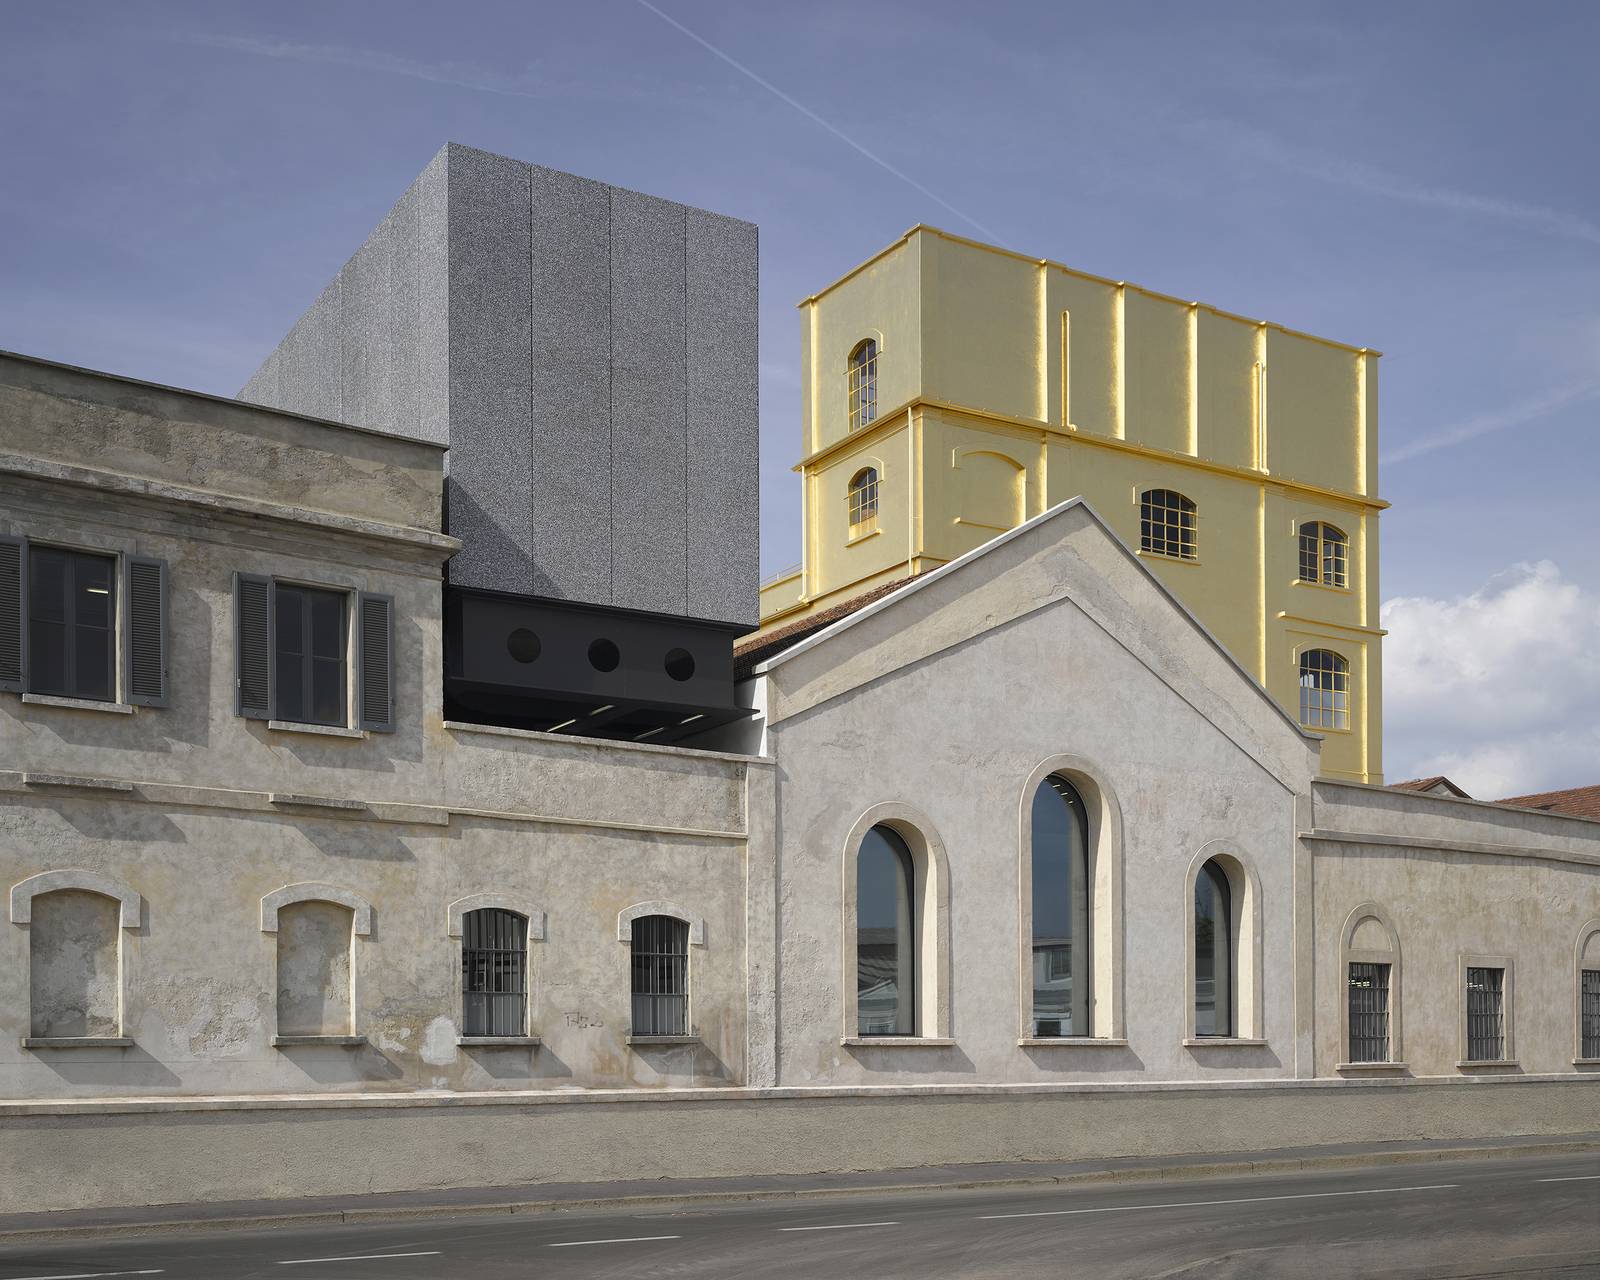 Milan Fondazione Prada. Photo: http://oma.eu/projects/fondazione-prada. Image Credit: http://www.domusweb.it/